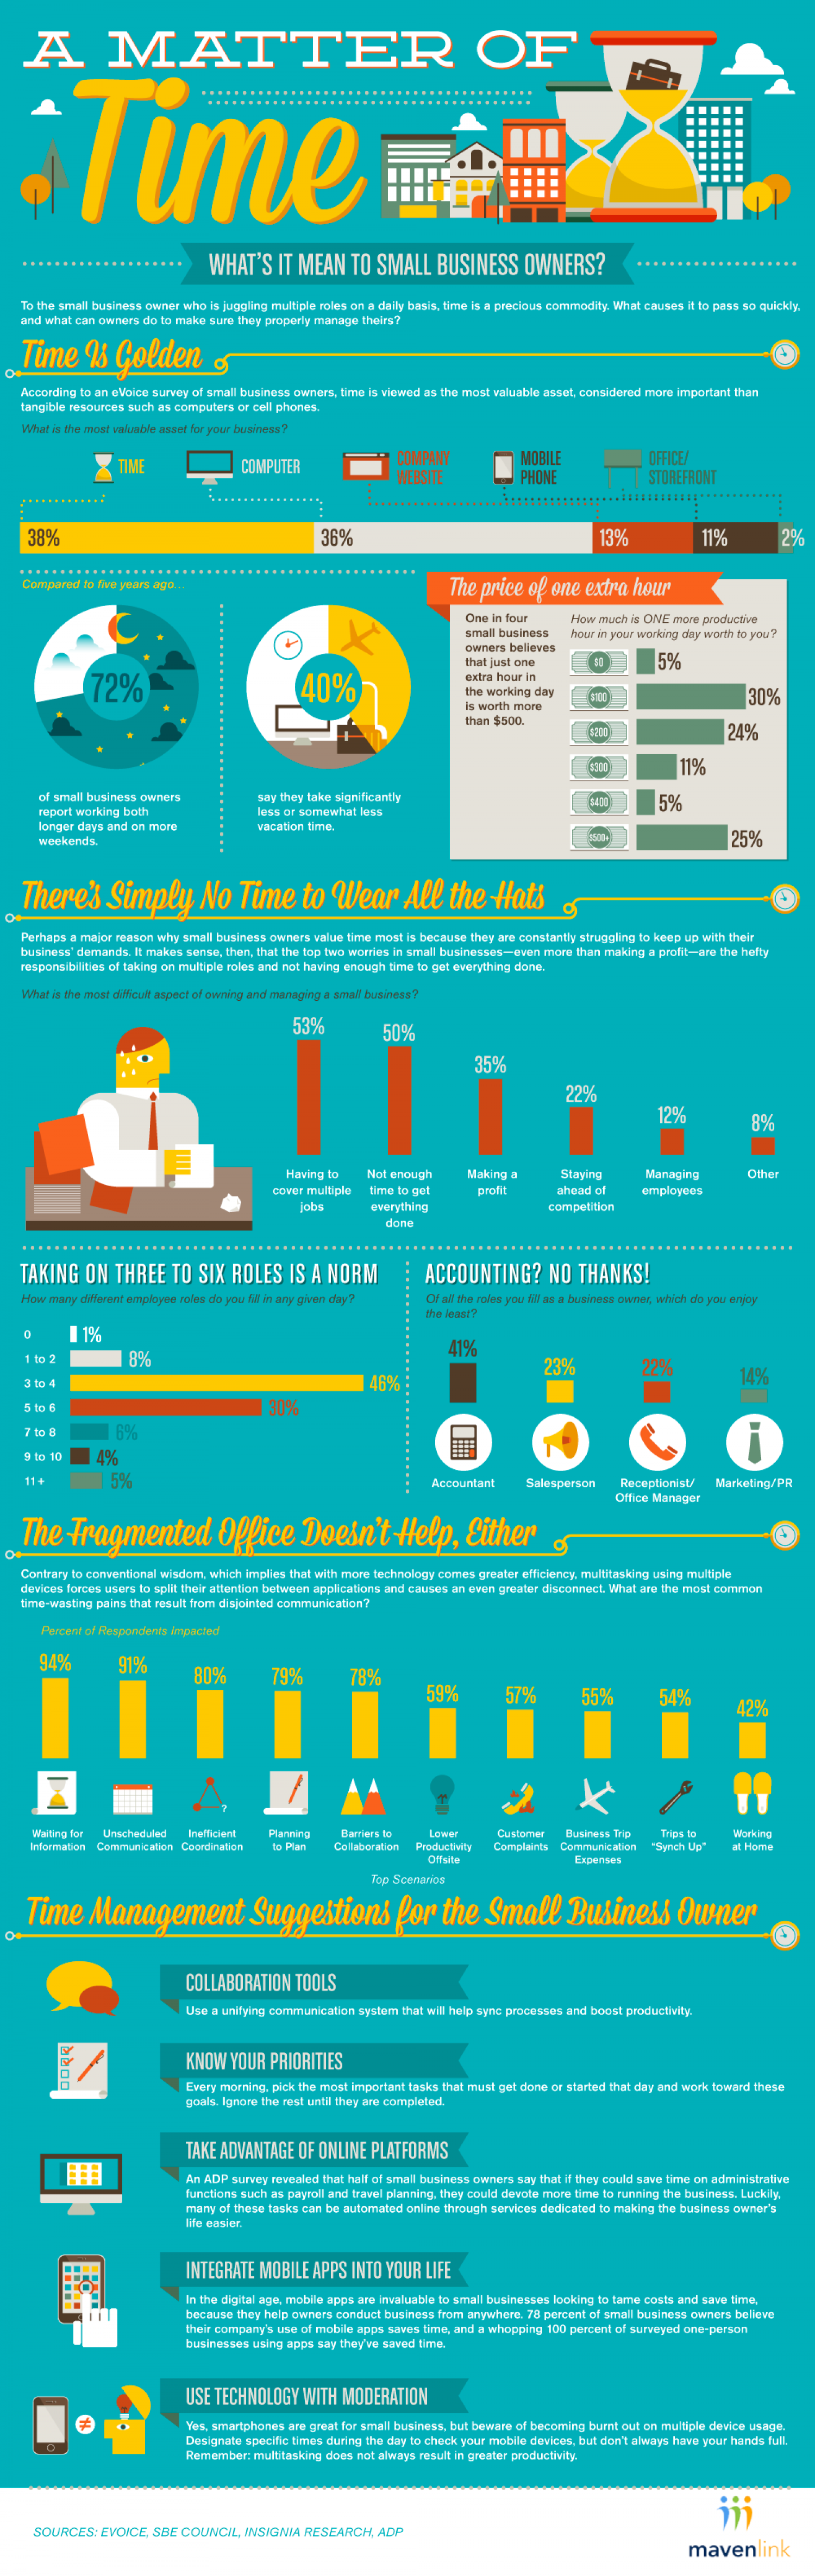 A Matter of Time: What Does Time Mean to Small Business Owners Infographic